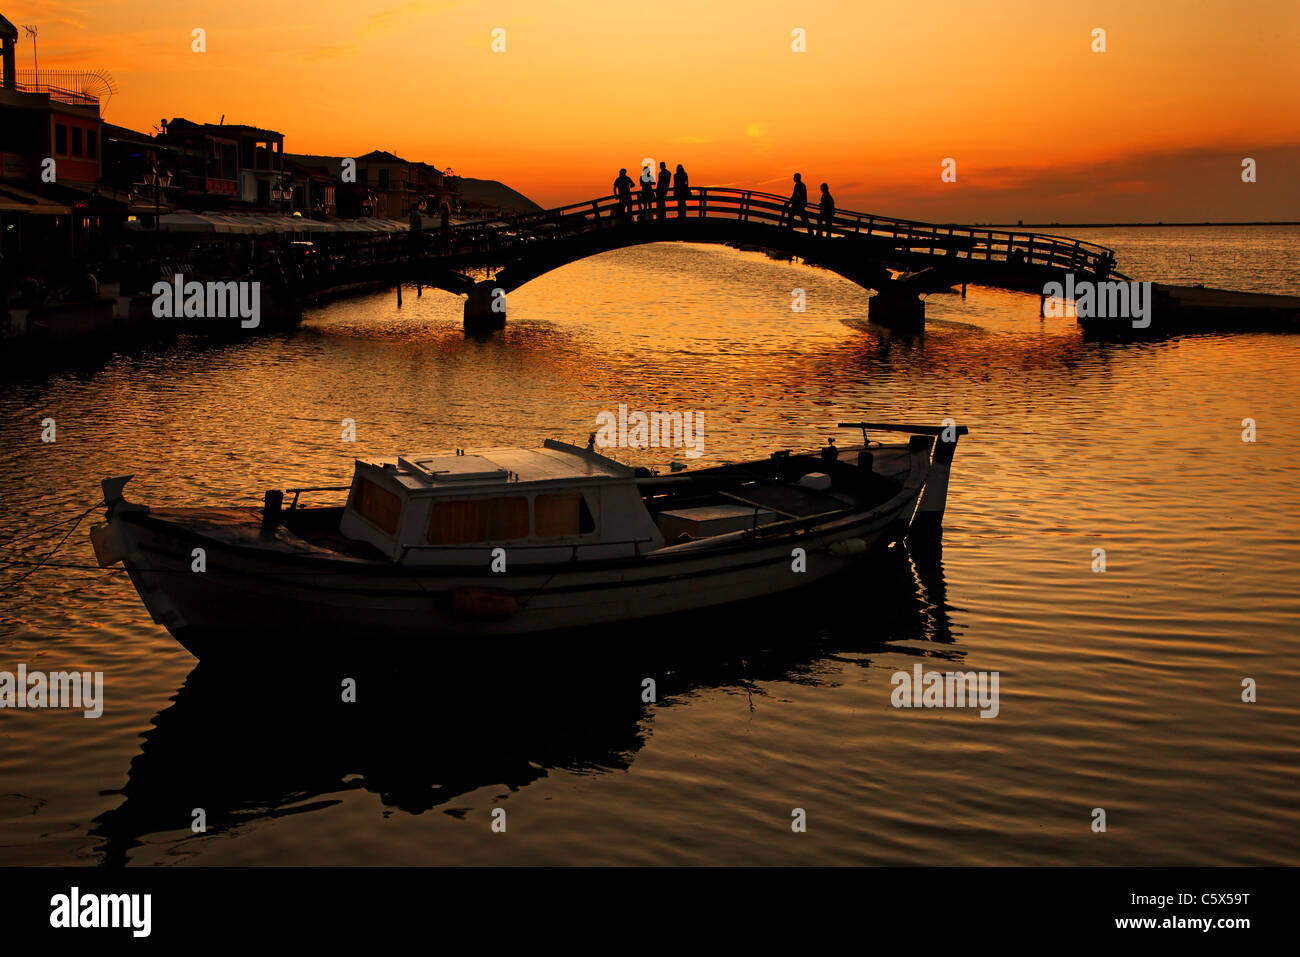 Sunset at Lefkas town, at the small marina for the fishing boats with the nice wooden bridge. Ionian islands, Greece. - Stock Image